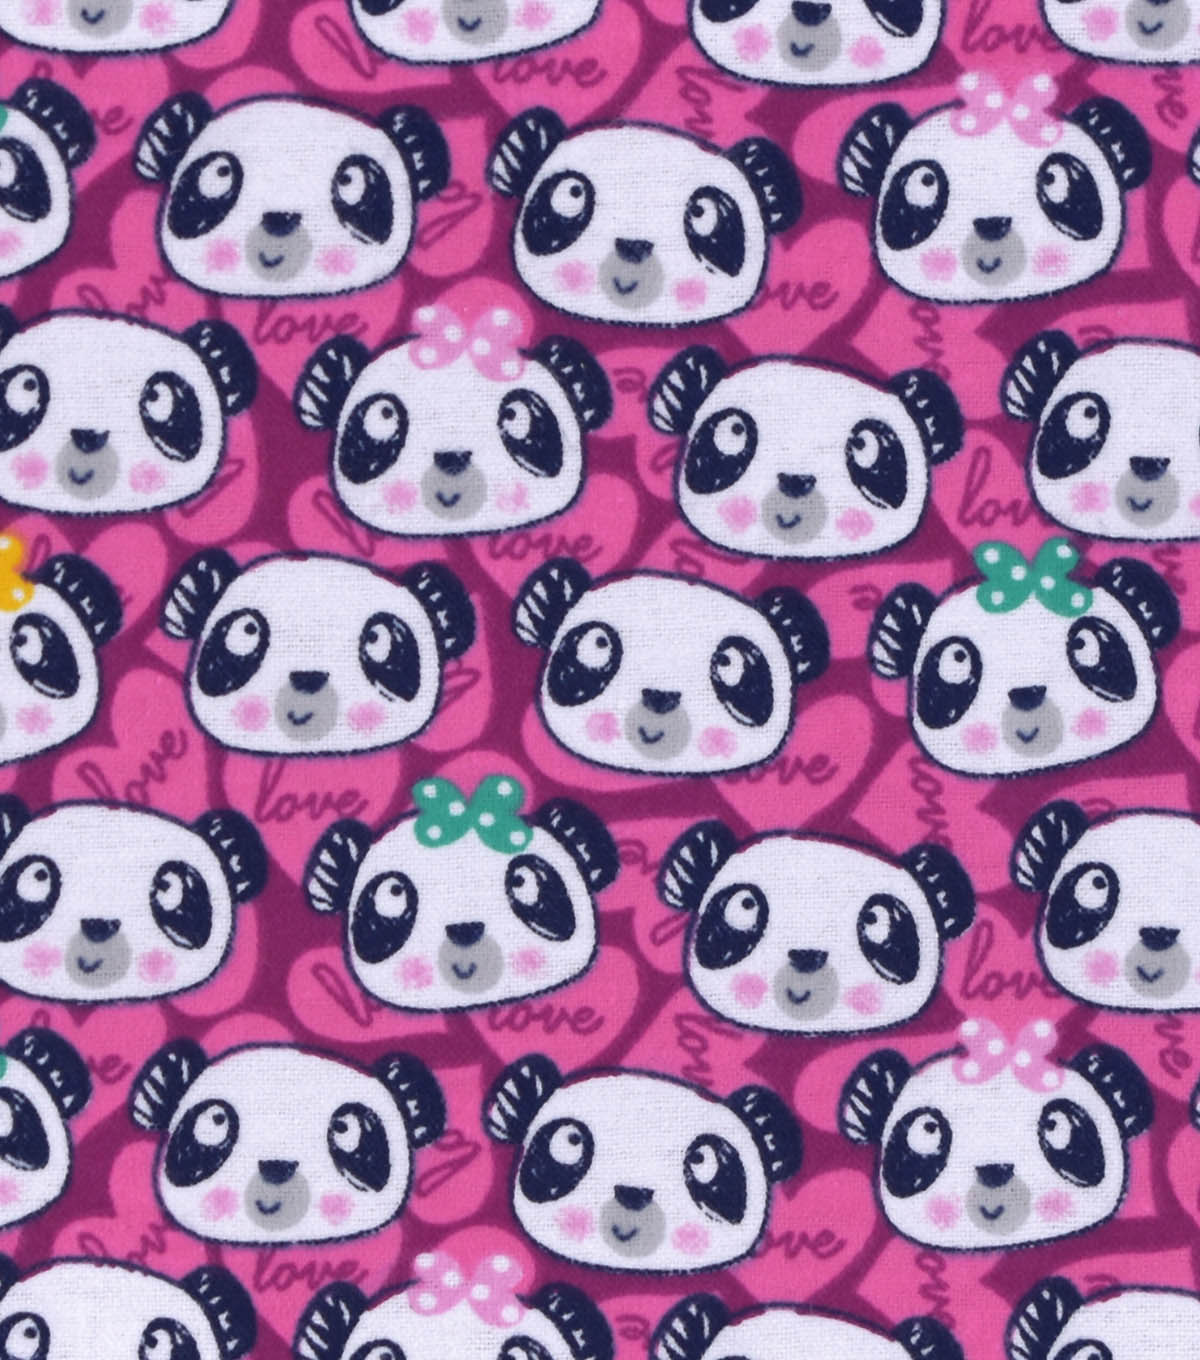 Snuggle Flannel Fabric -Panda Faces